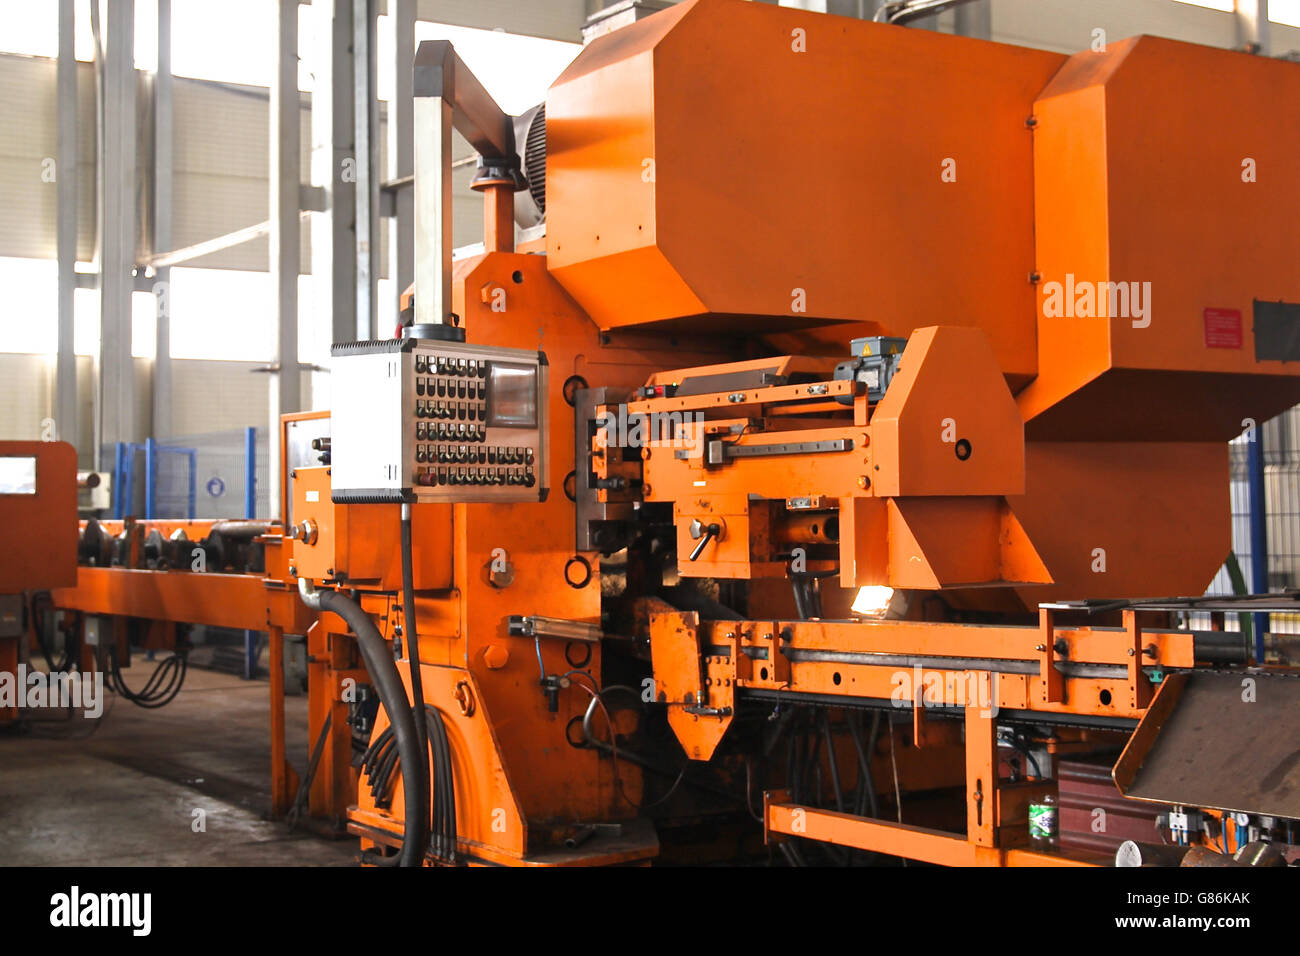 elements of machines for cold metal cutting - Stock Image